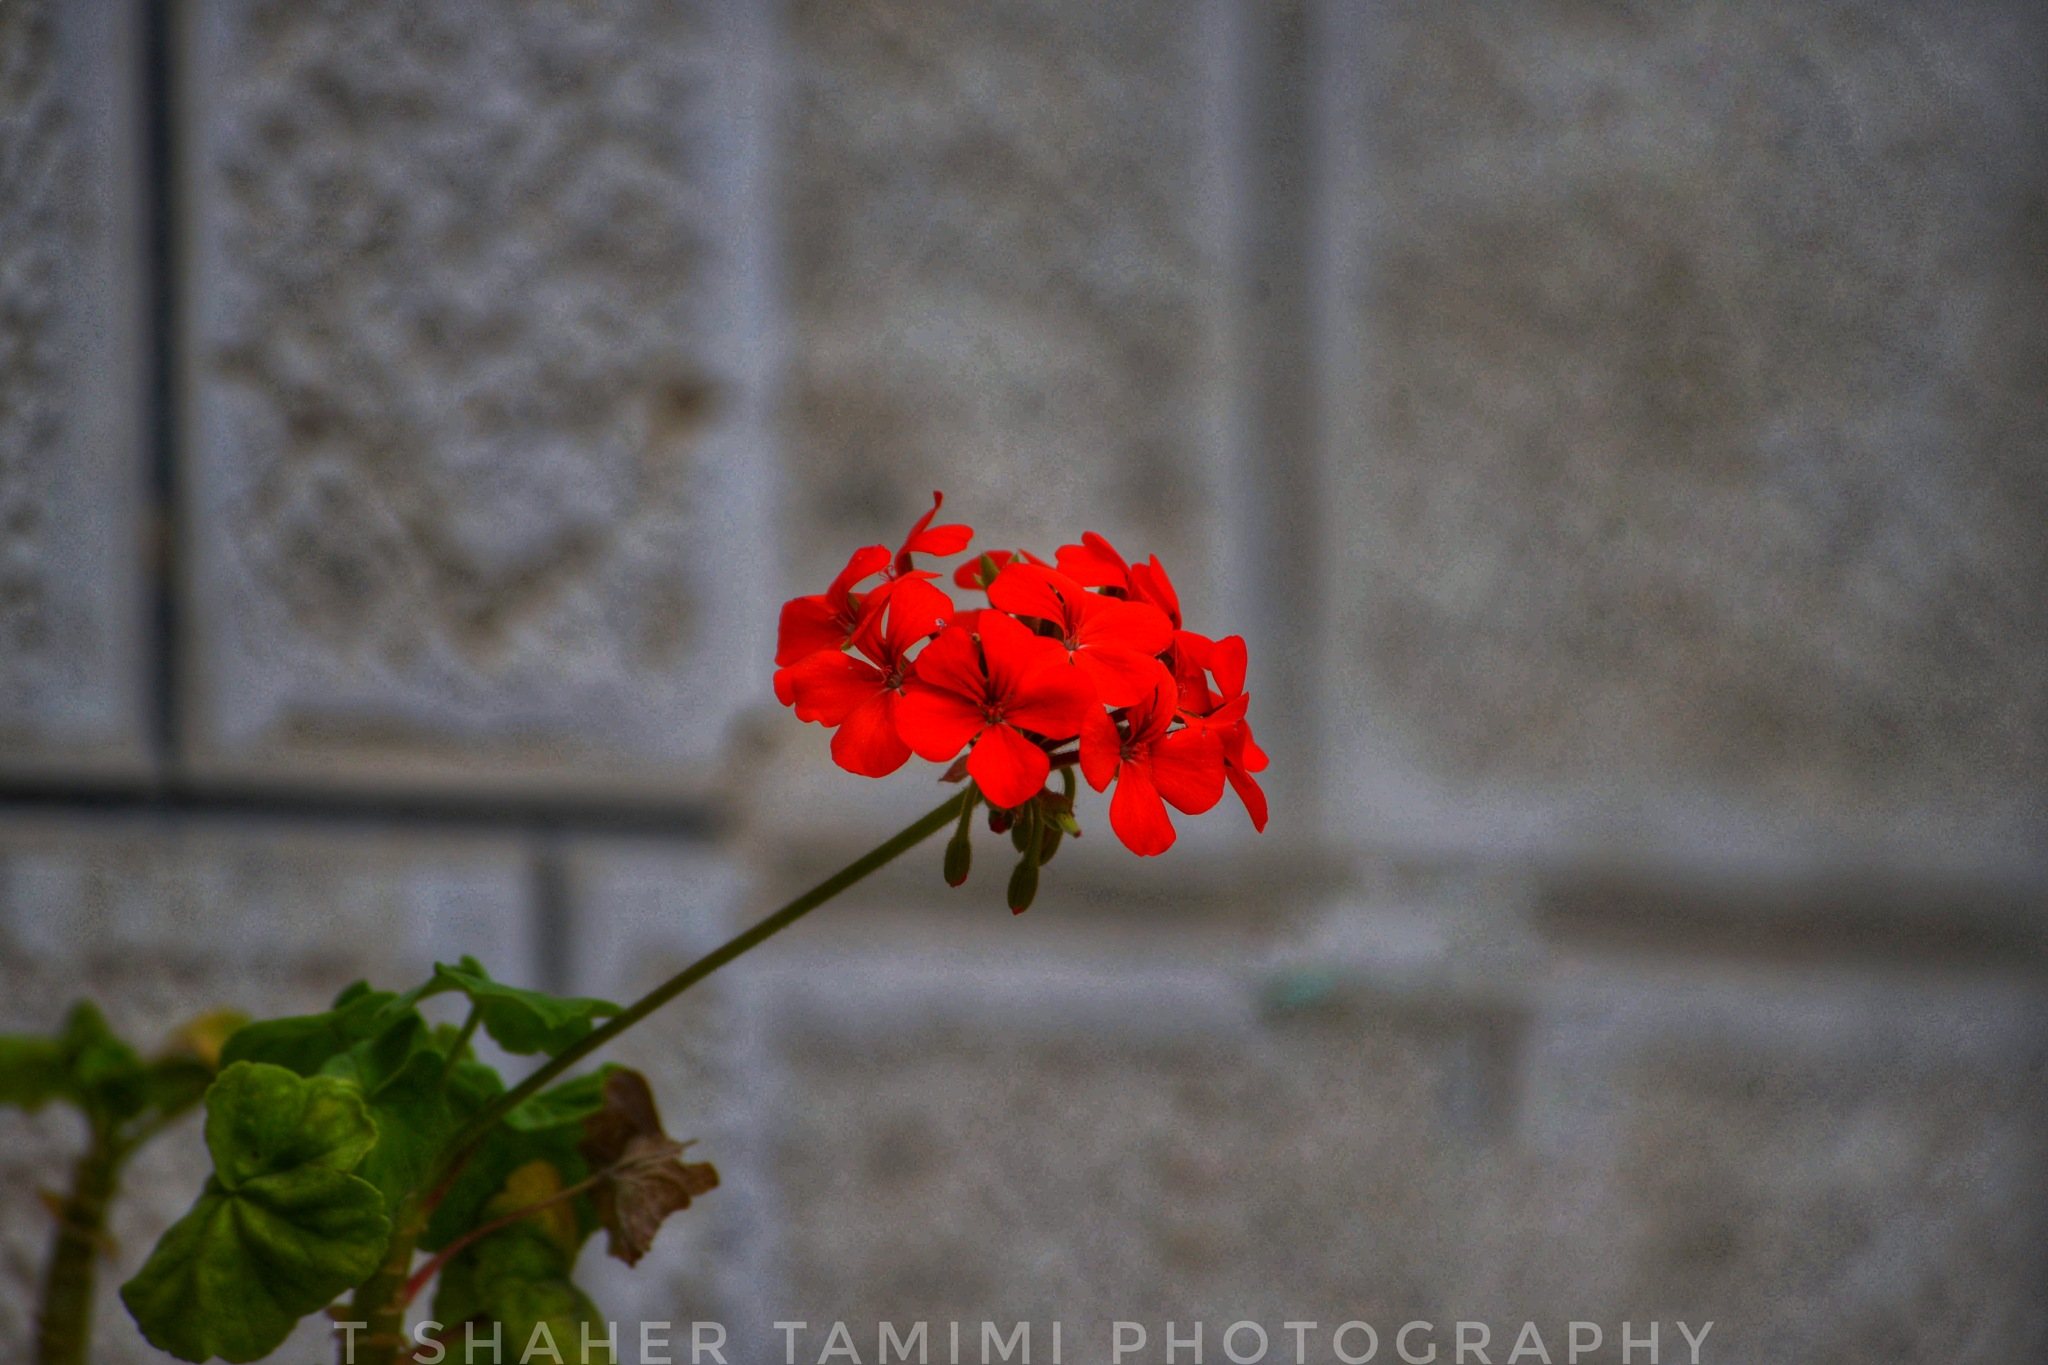 Untitled by shaher tamimi